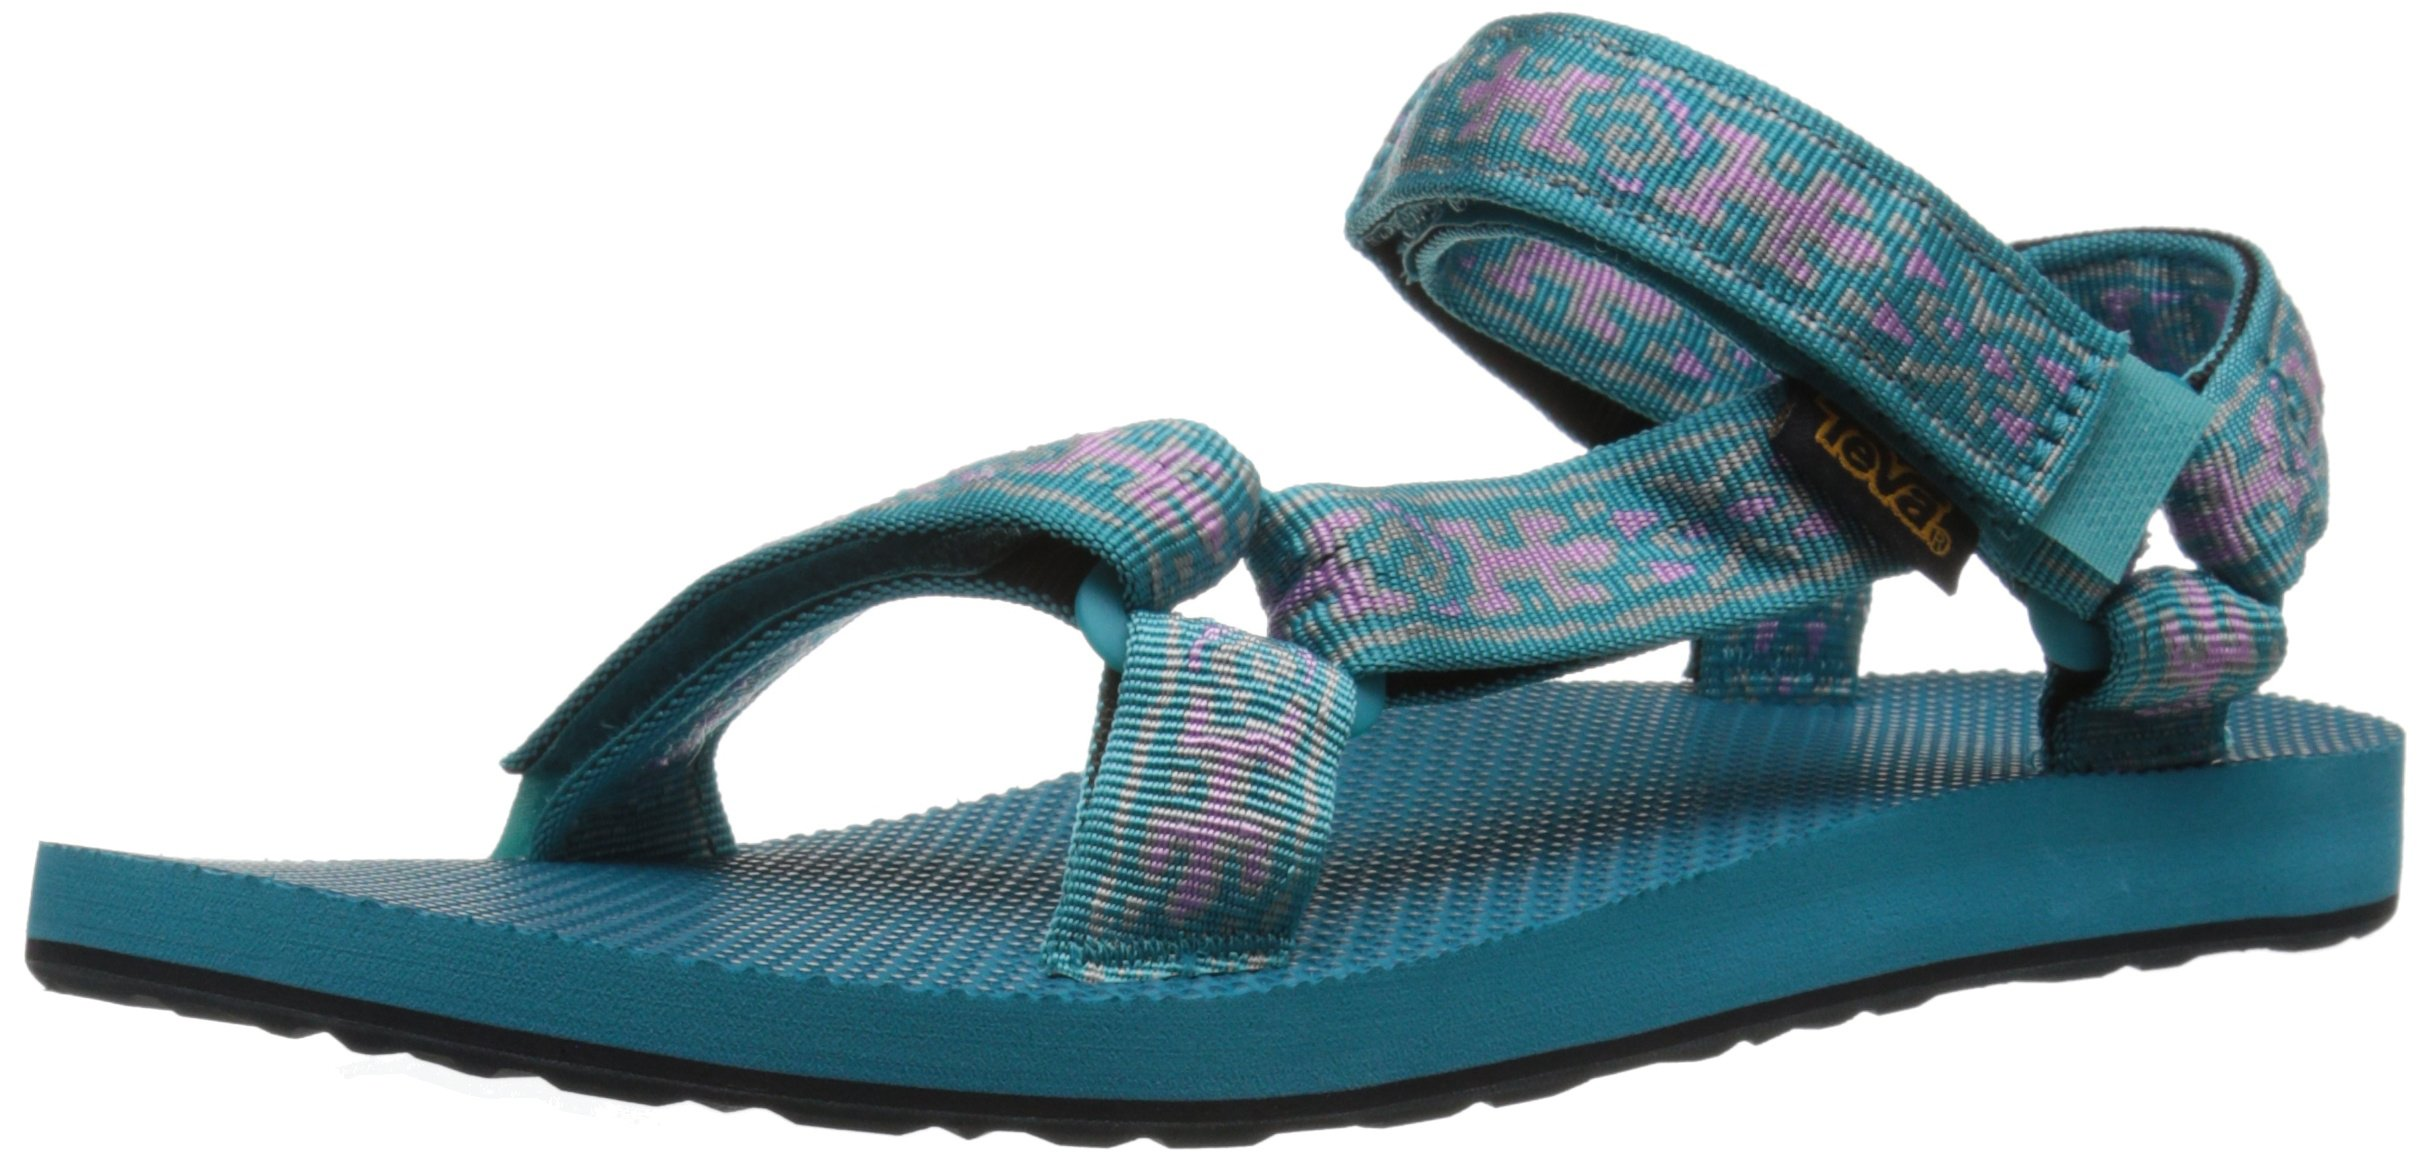 Teva Women's Original Universal Sandal, Old Lizard Lake Blue, 5 M US